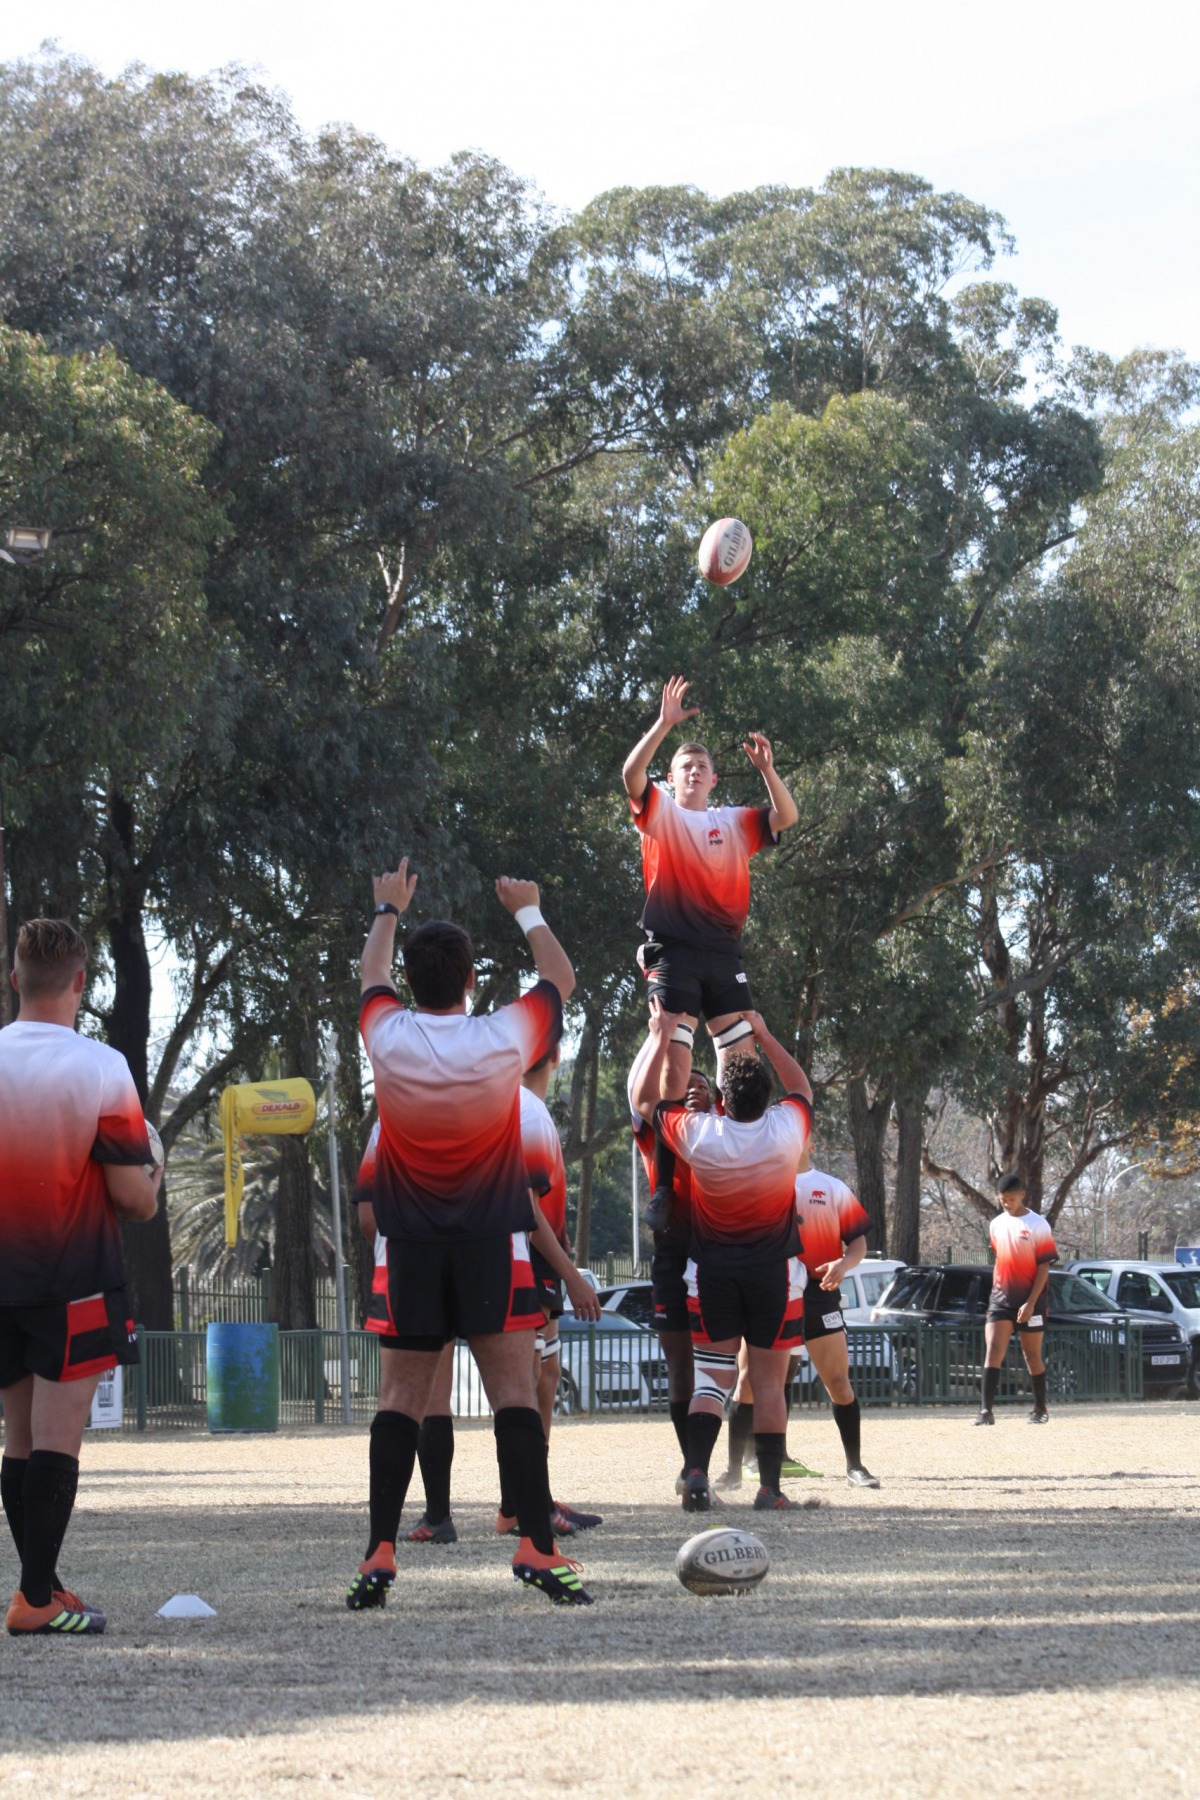 Wessel practicing the lineout with teammates